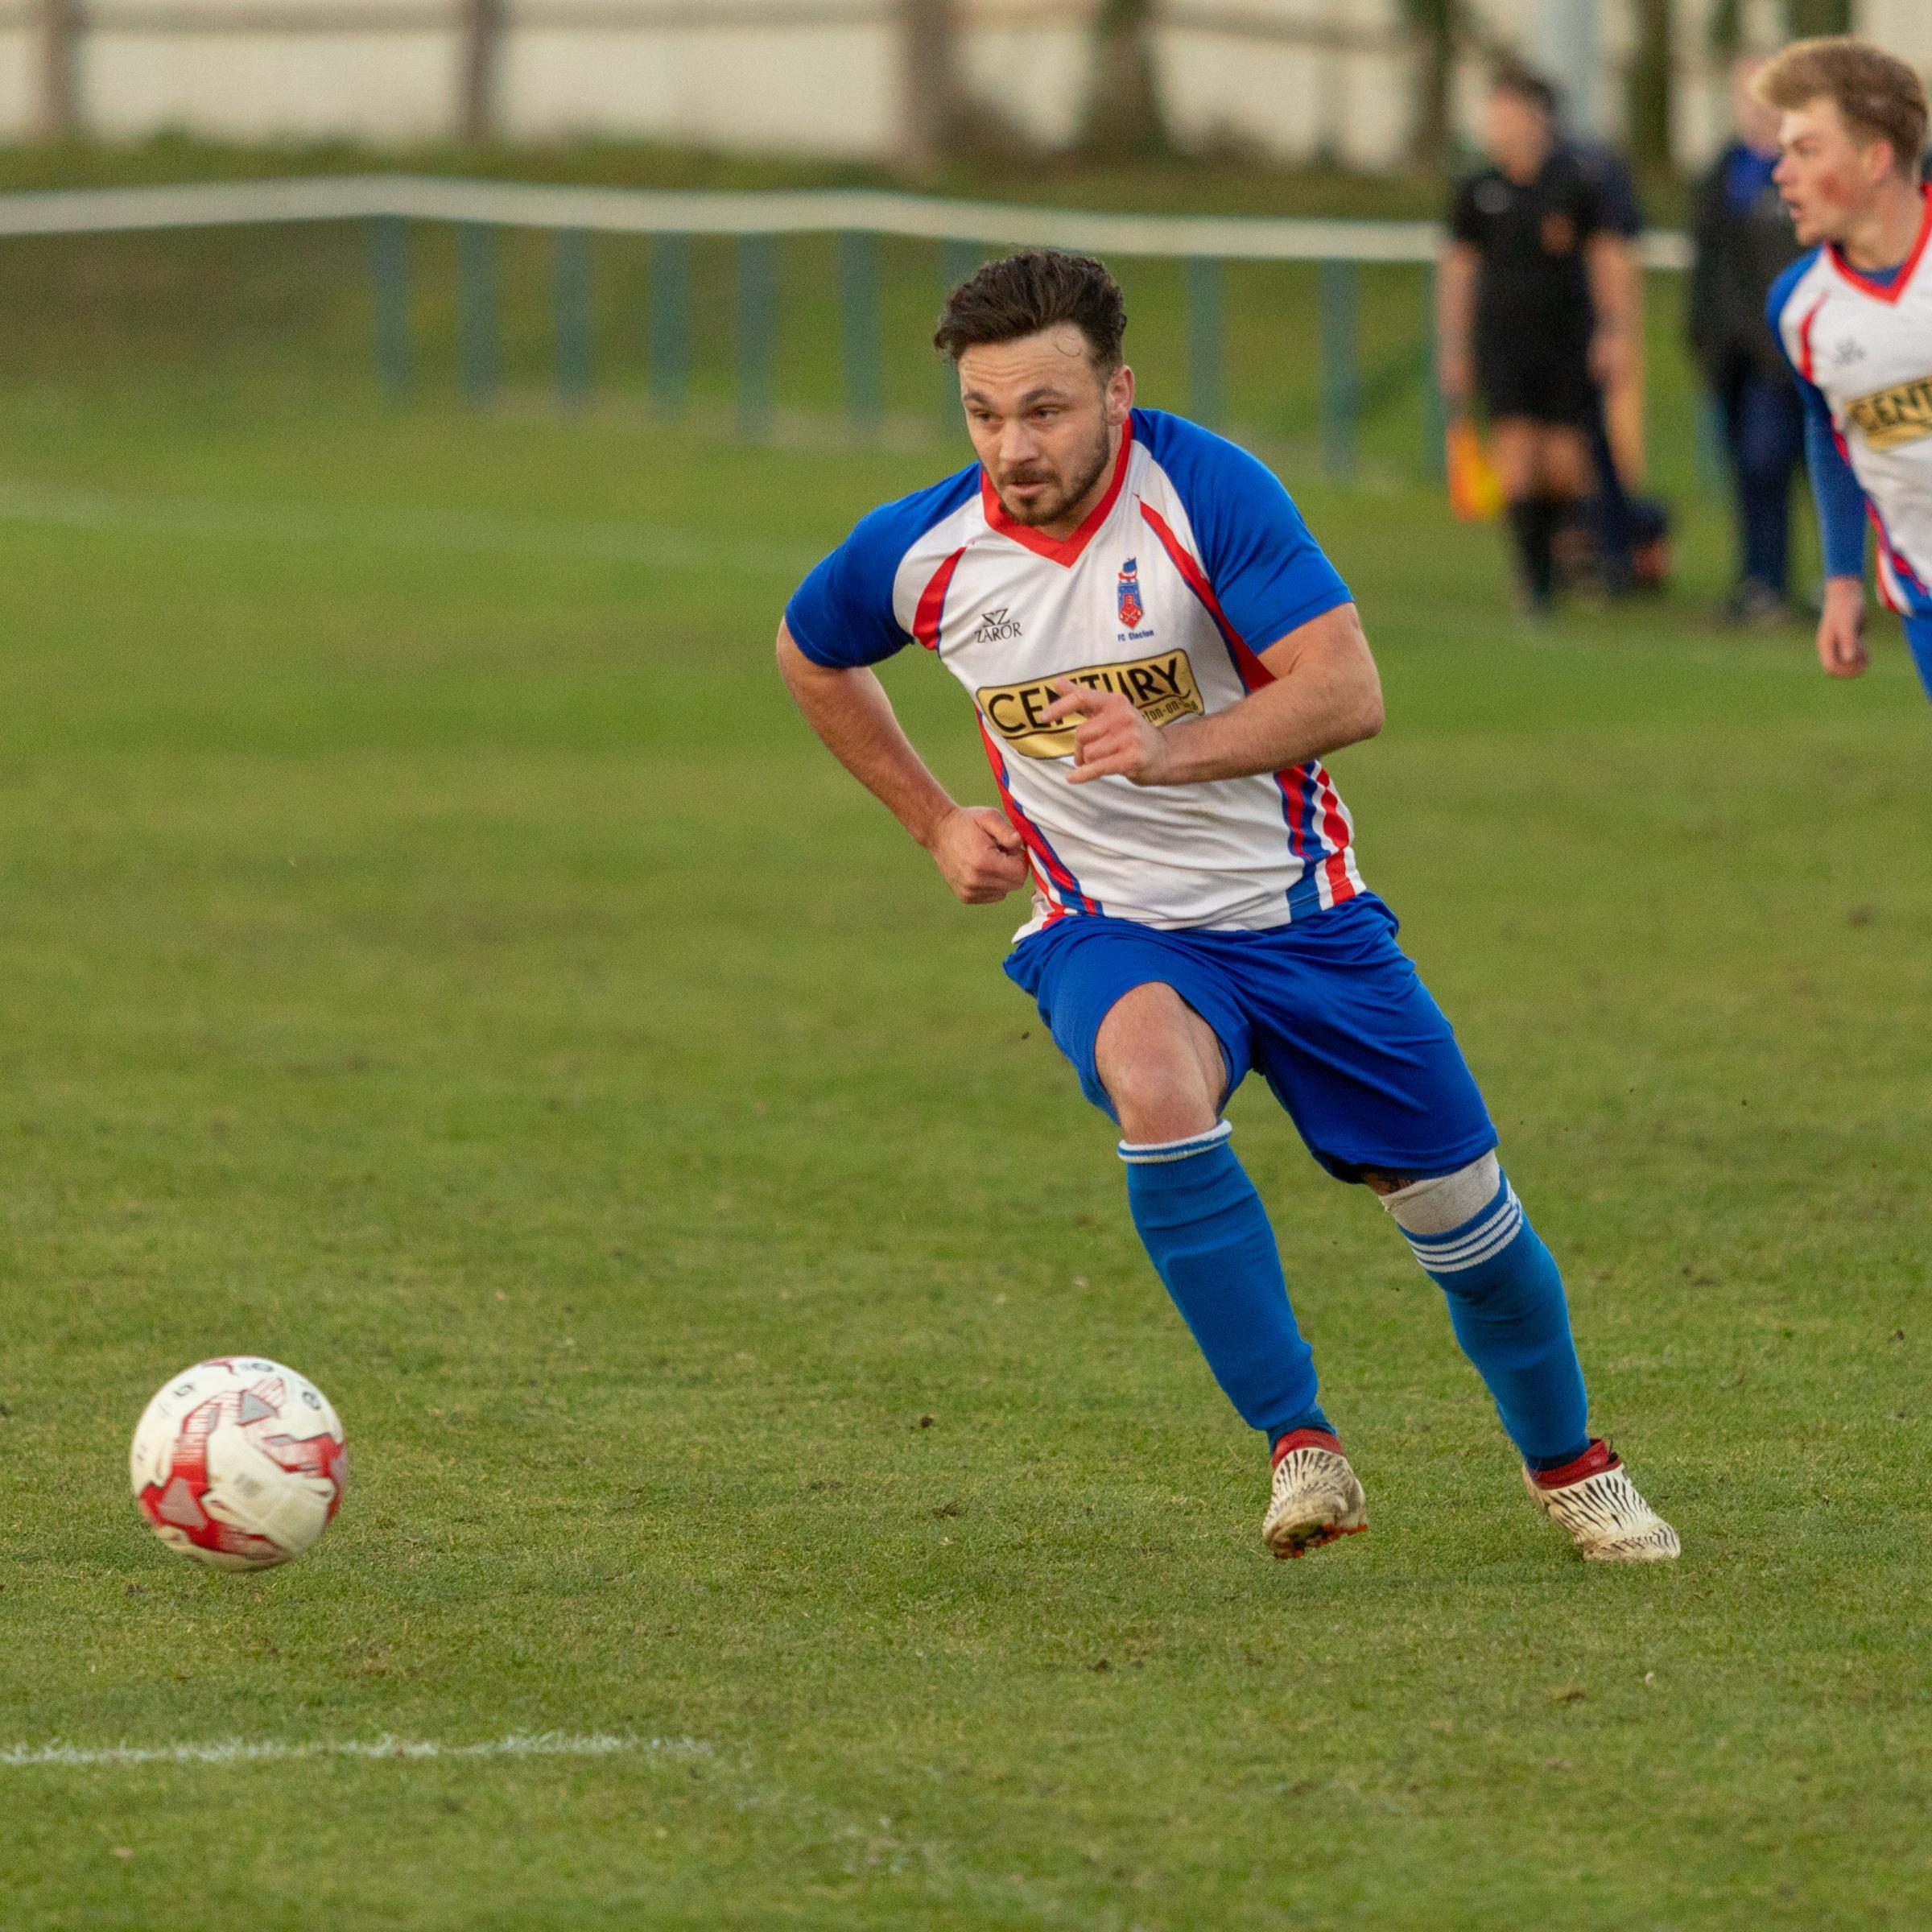 Another goal - Clacton striker Matt Eve Picture: Rob Smith (RJS Photography)